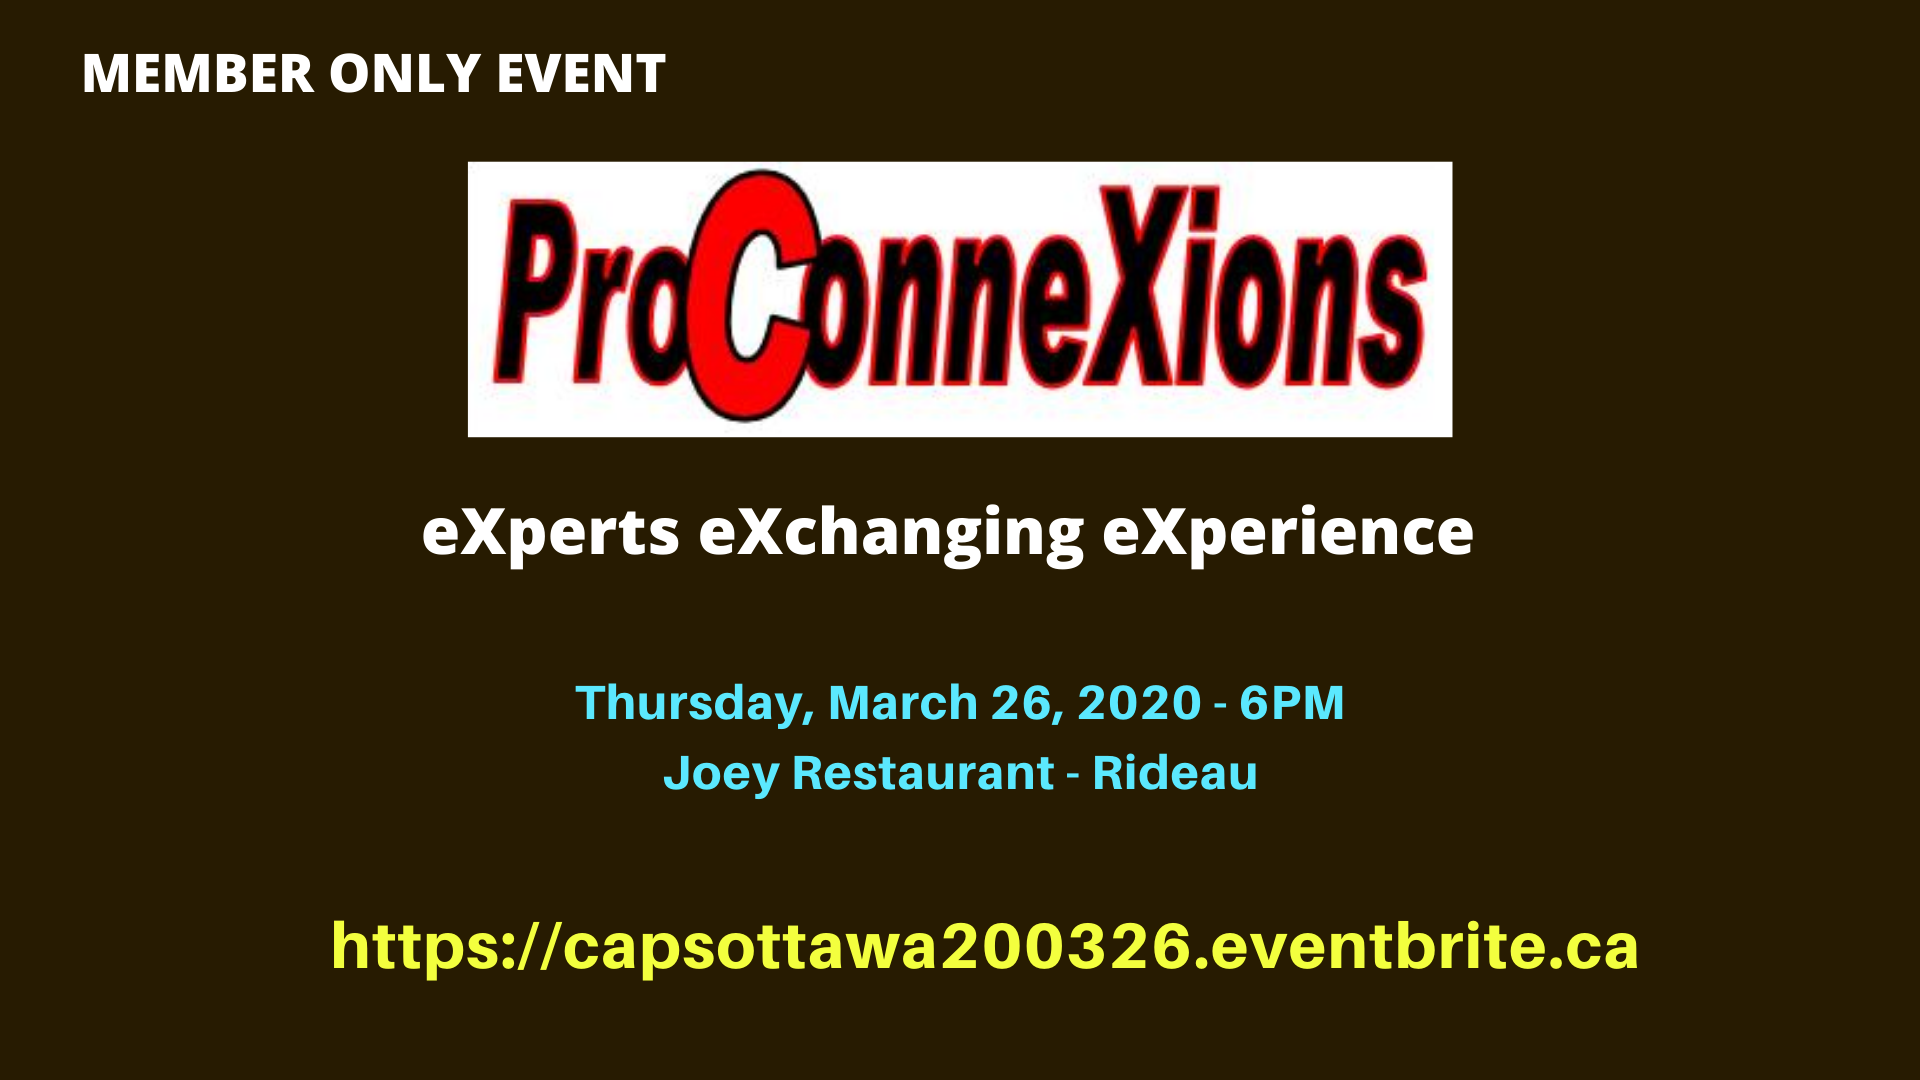 CAPS Ottawa Pro ConneXions Event - For Members Only